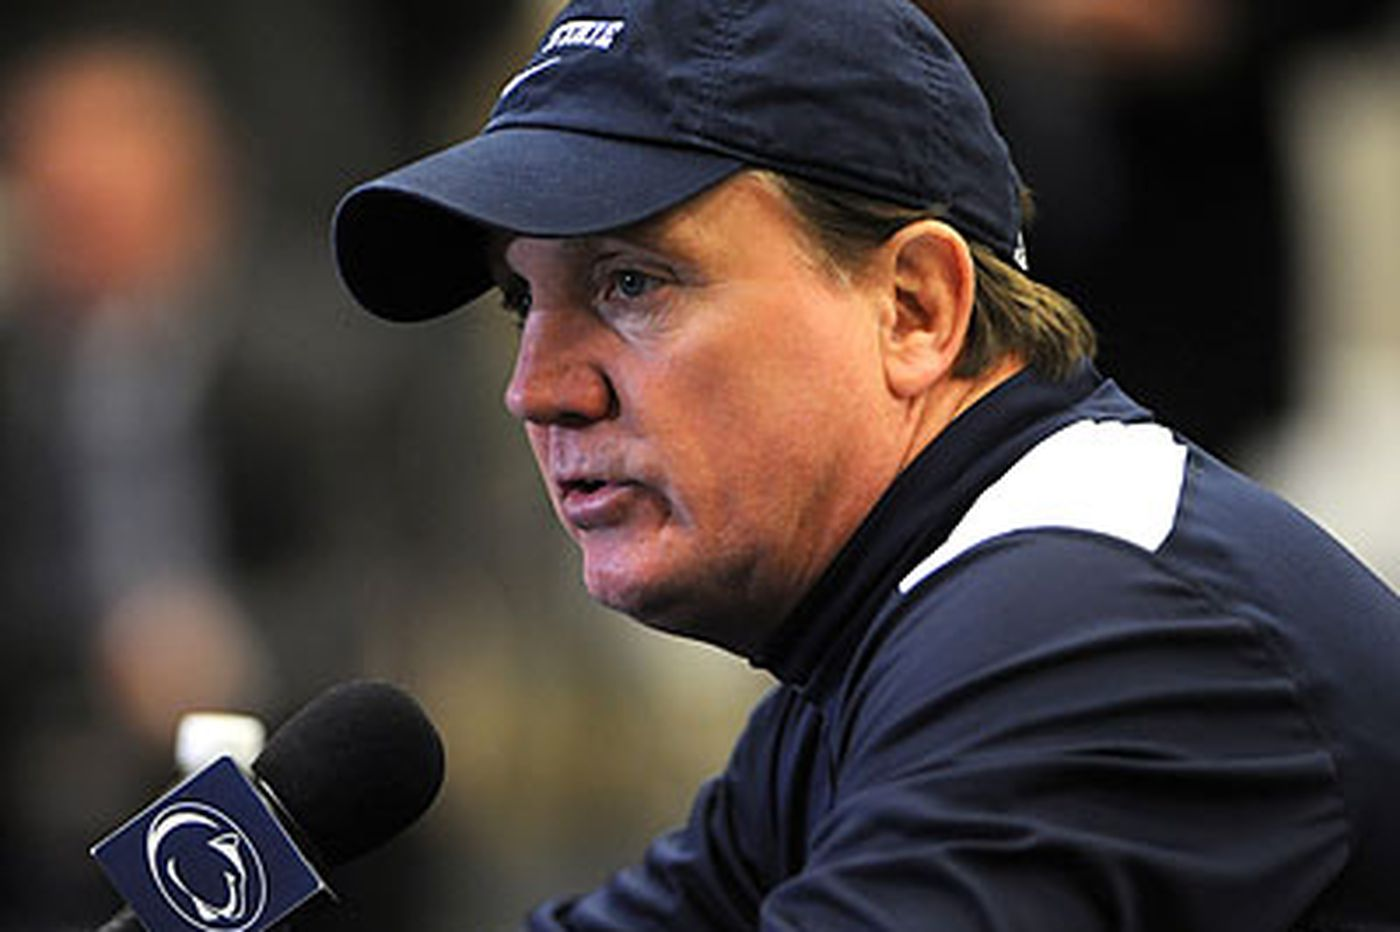 Bradley awaits decision on Nittany Lions' new coach